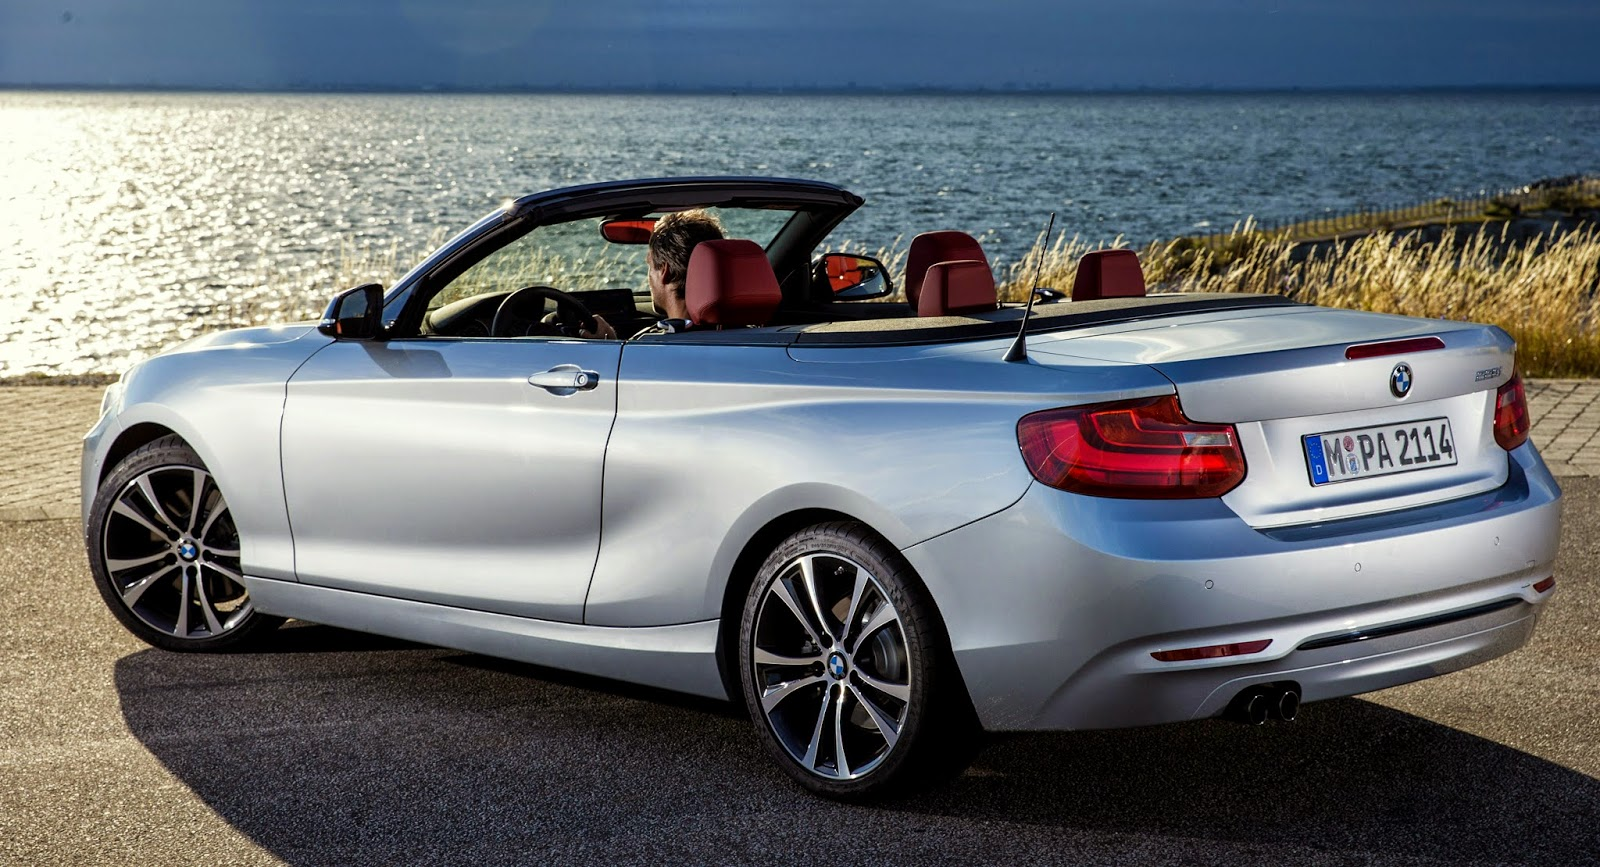 Source bmw press release pics and video after the read more jump press release the bmw 2 series convertible